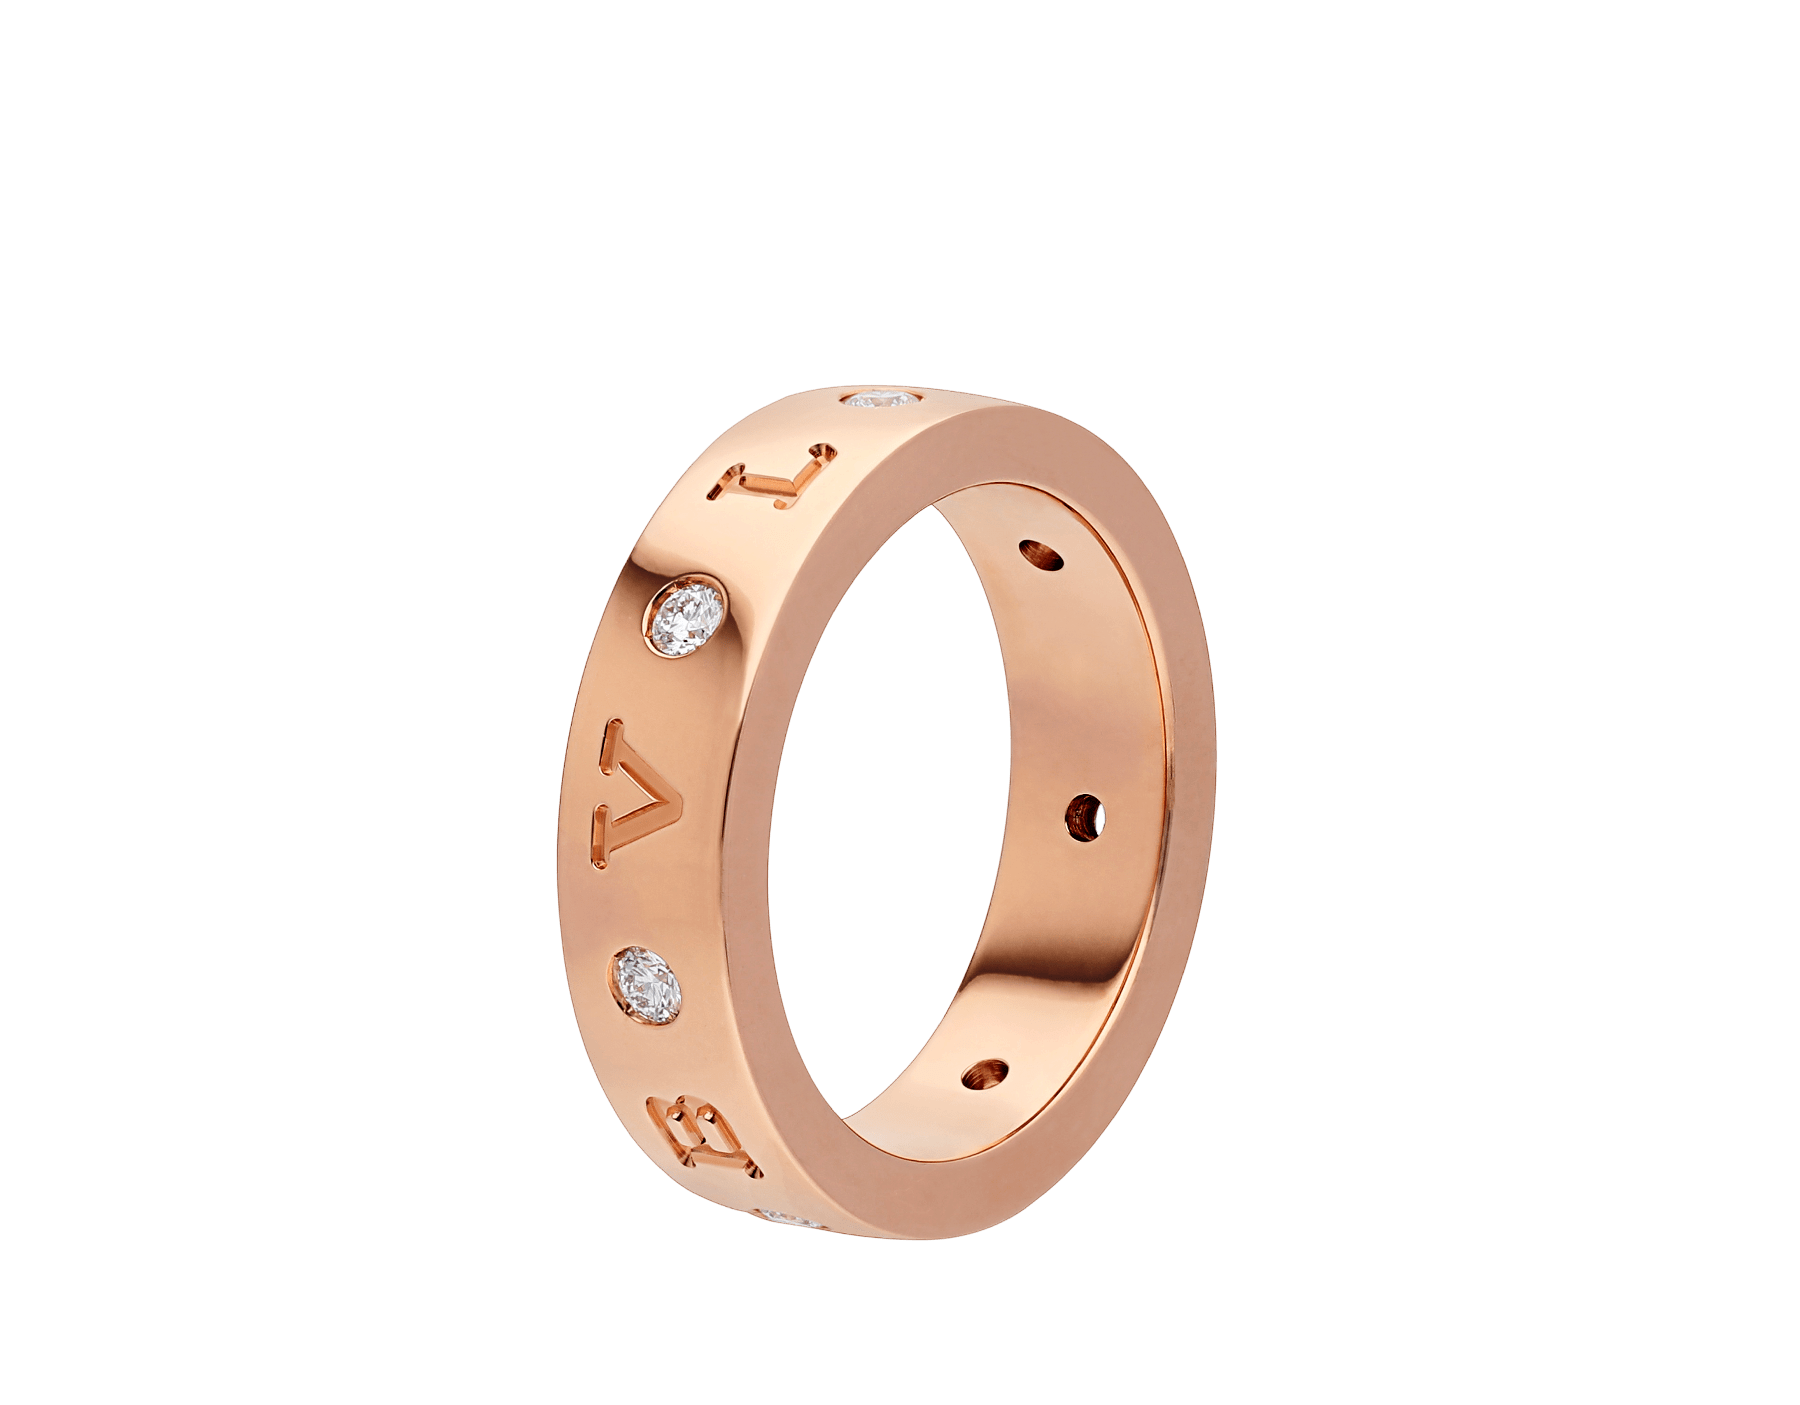 Bague BVLGARI BVLGARI en or rose 18 K sertie de sept diamants (0,20 ct) AN858005 image 1